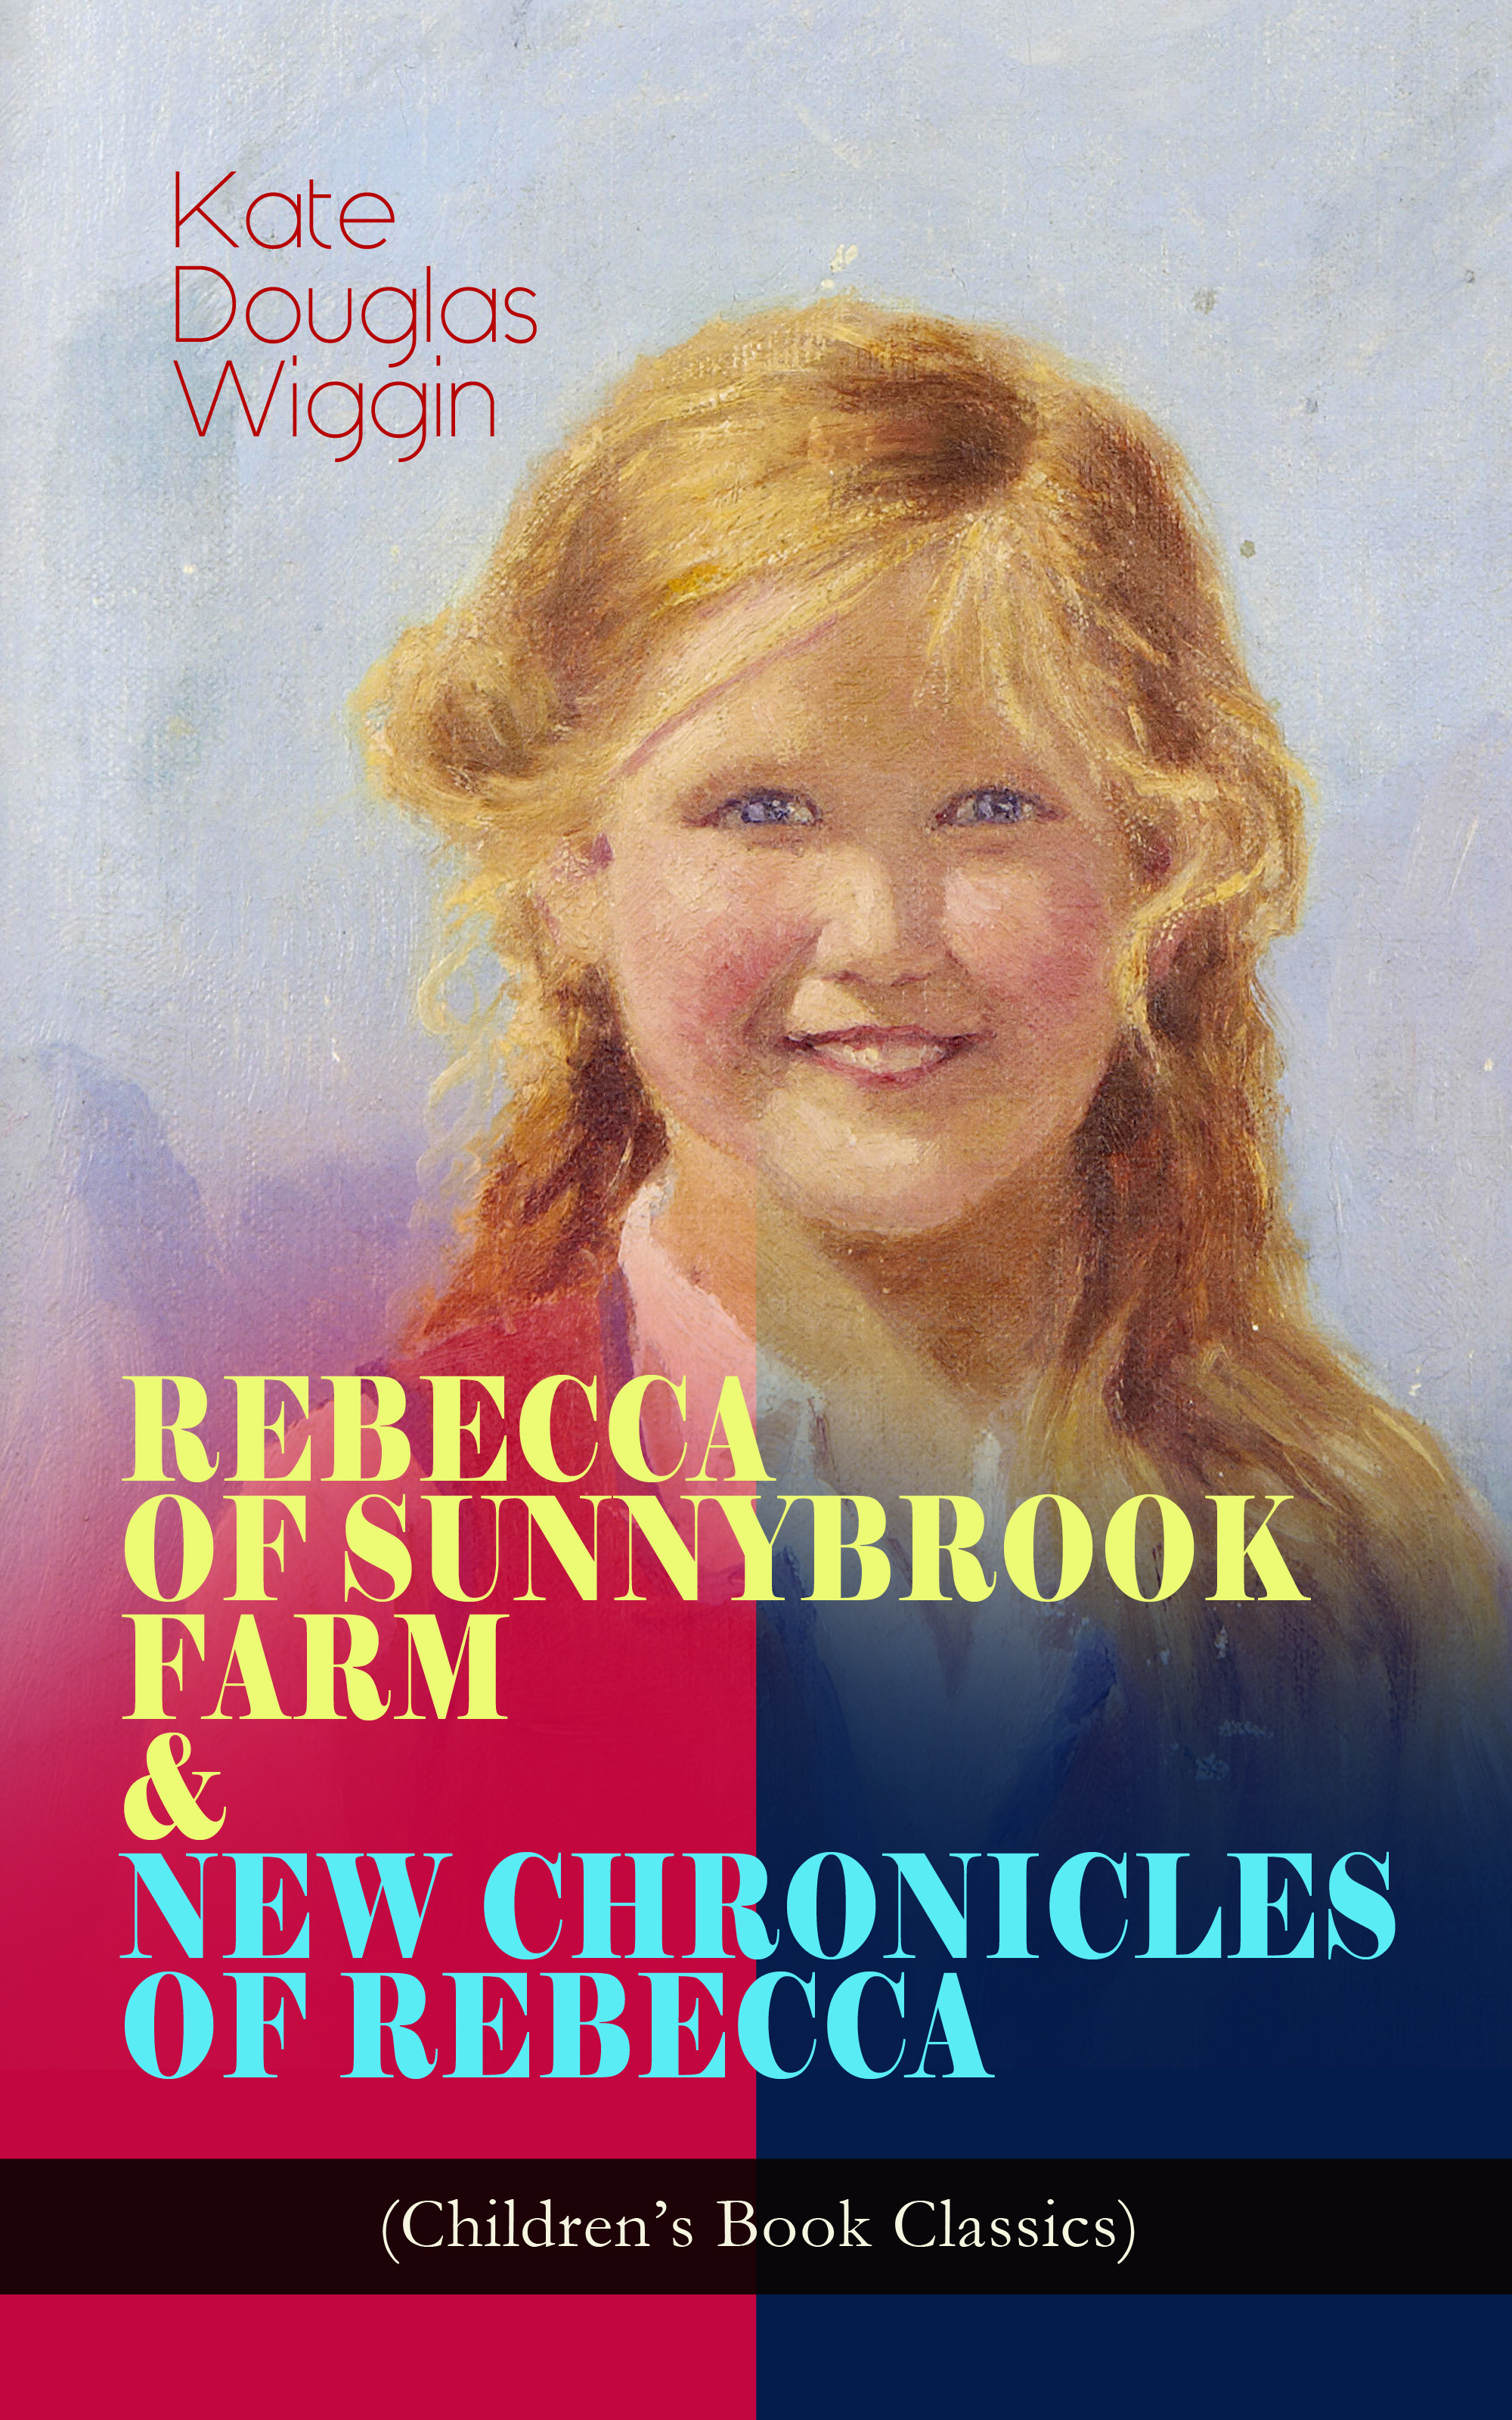 Kate Douglas Wiggin REBECCA OF SUNNYBROOK FARM & NEW CHRONICLES OF REBECCA (Children's Book Classics) rebecca gransden rusticles